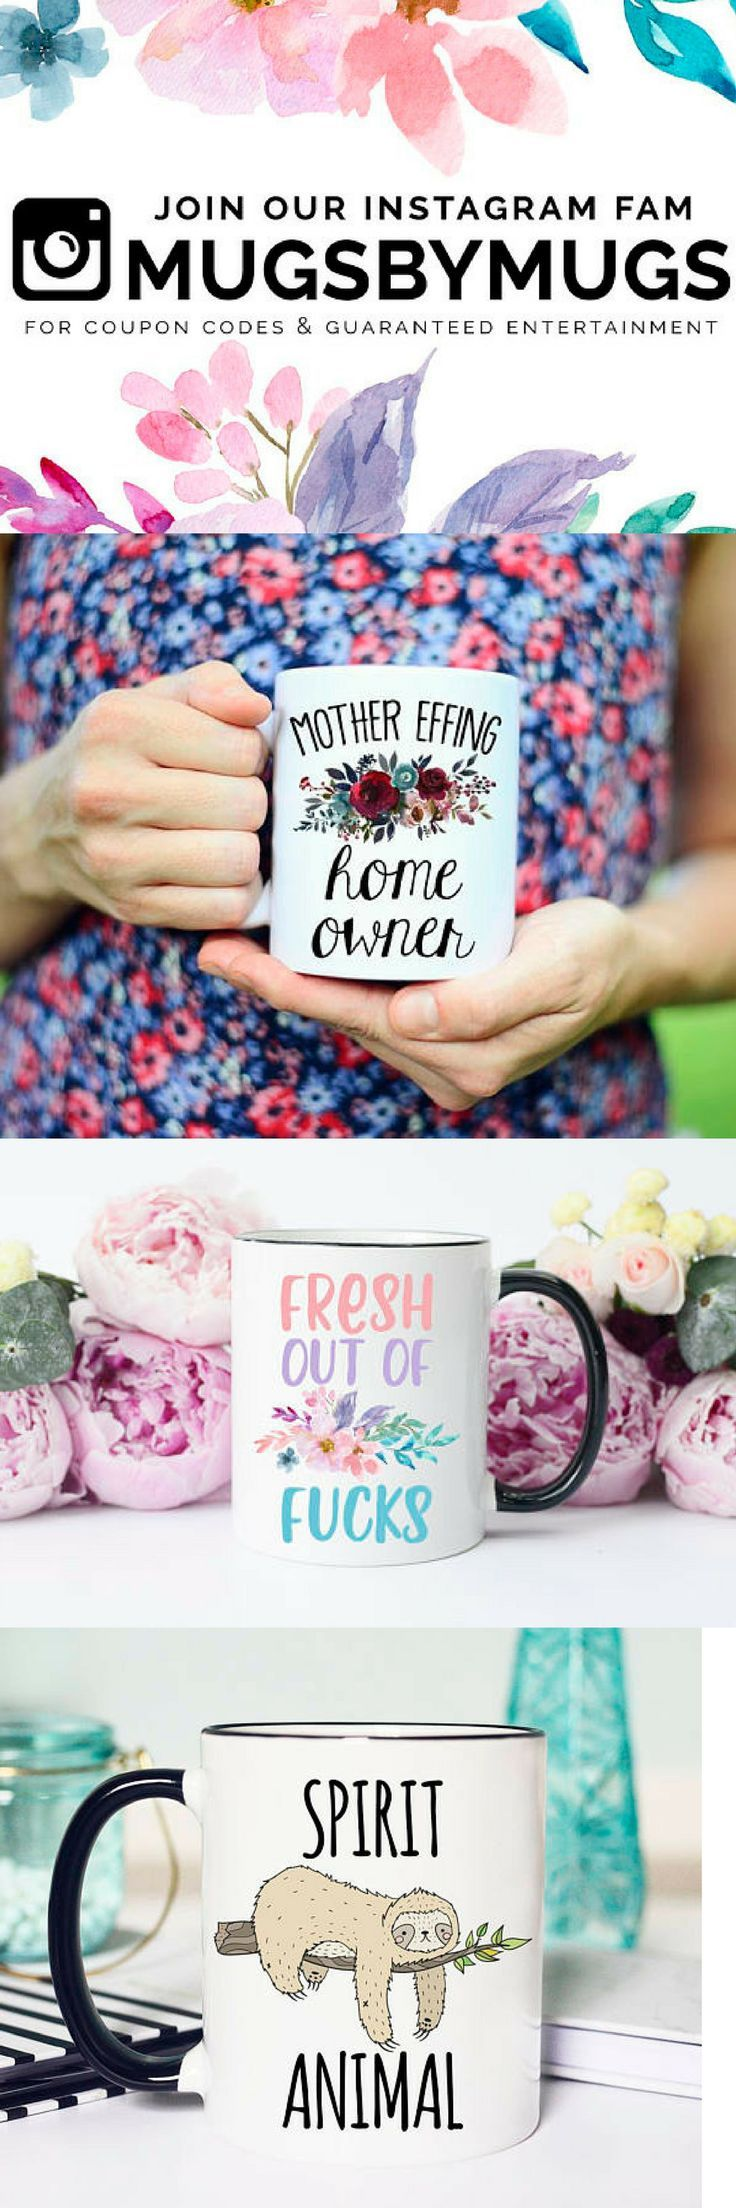 Wedding Mugs, Funny Mugs, Inspirational Mugs and more! #etsyshop #etsyfinds #mugs #custommade #affiliate #weddinggifts